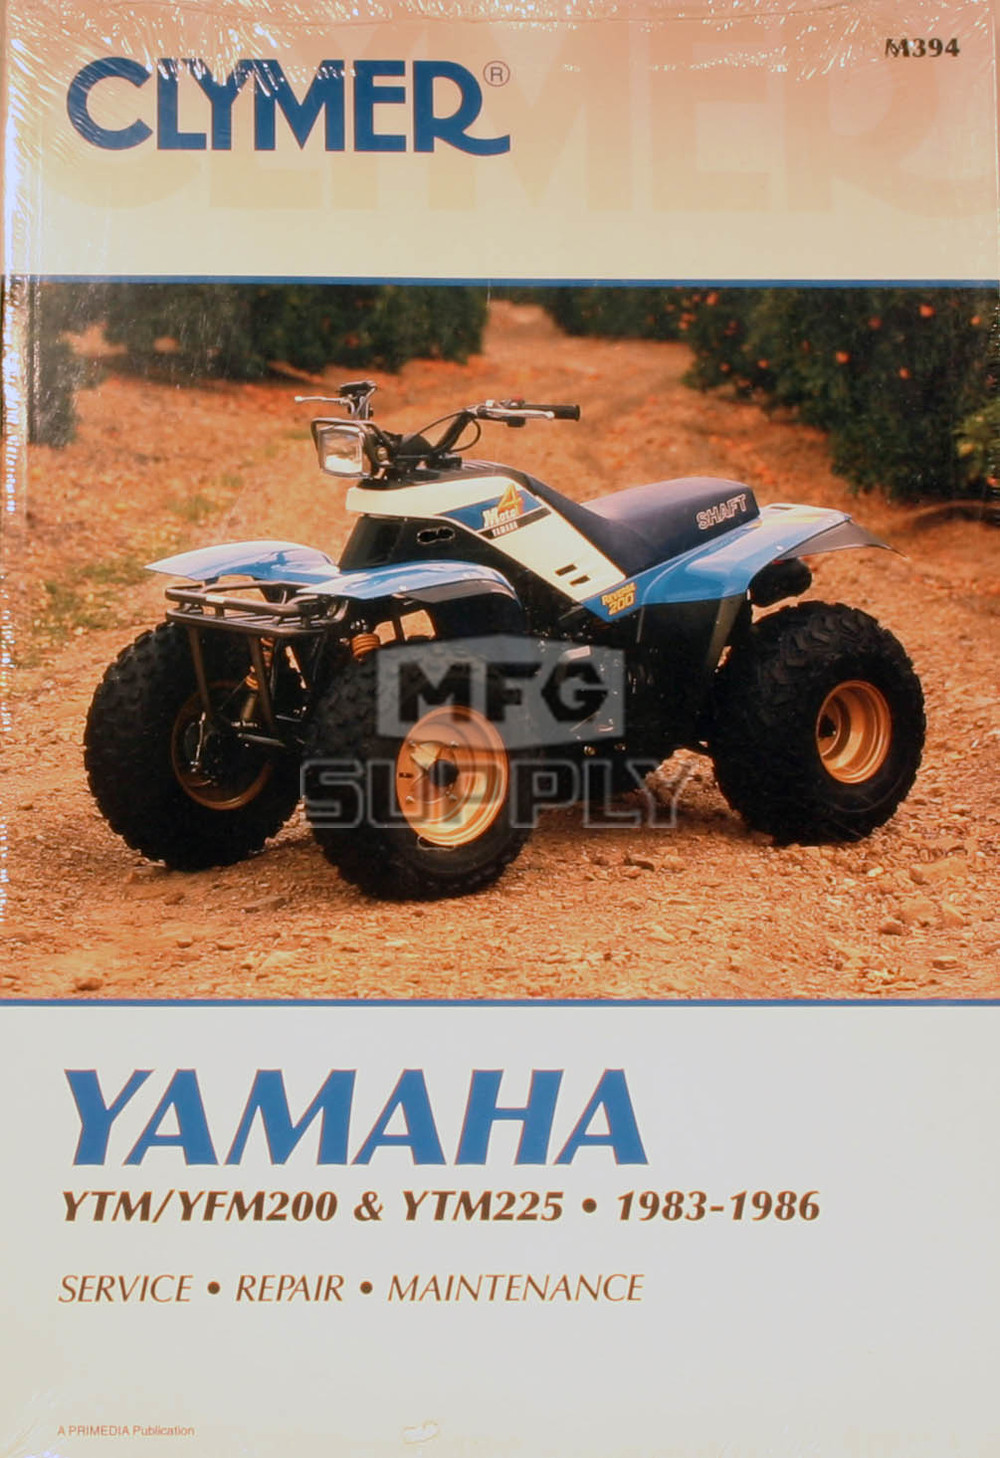 Cm394 83 86 yamaha ytm yfm200 225 repair maintenance for Yamaha ysp 5600 manual